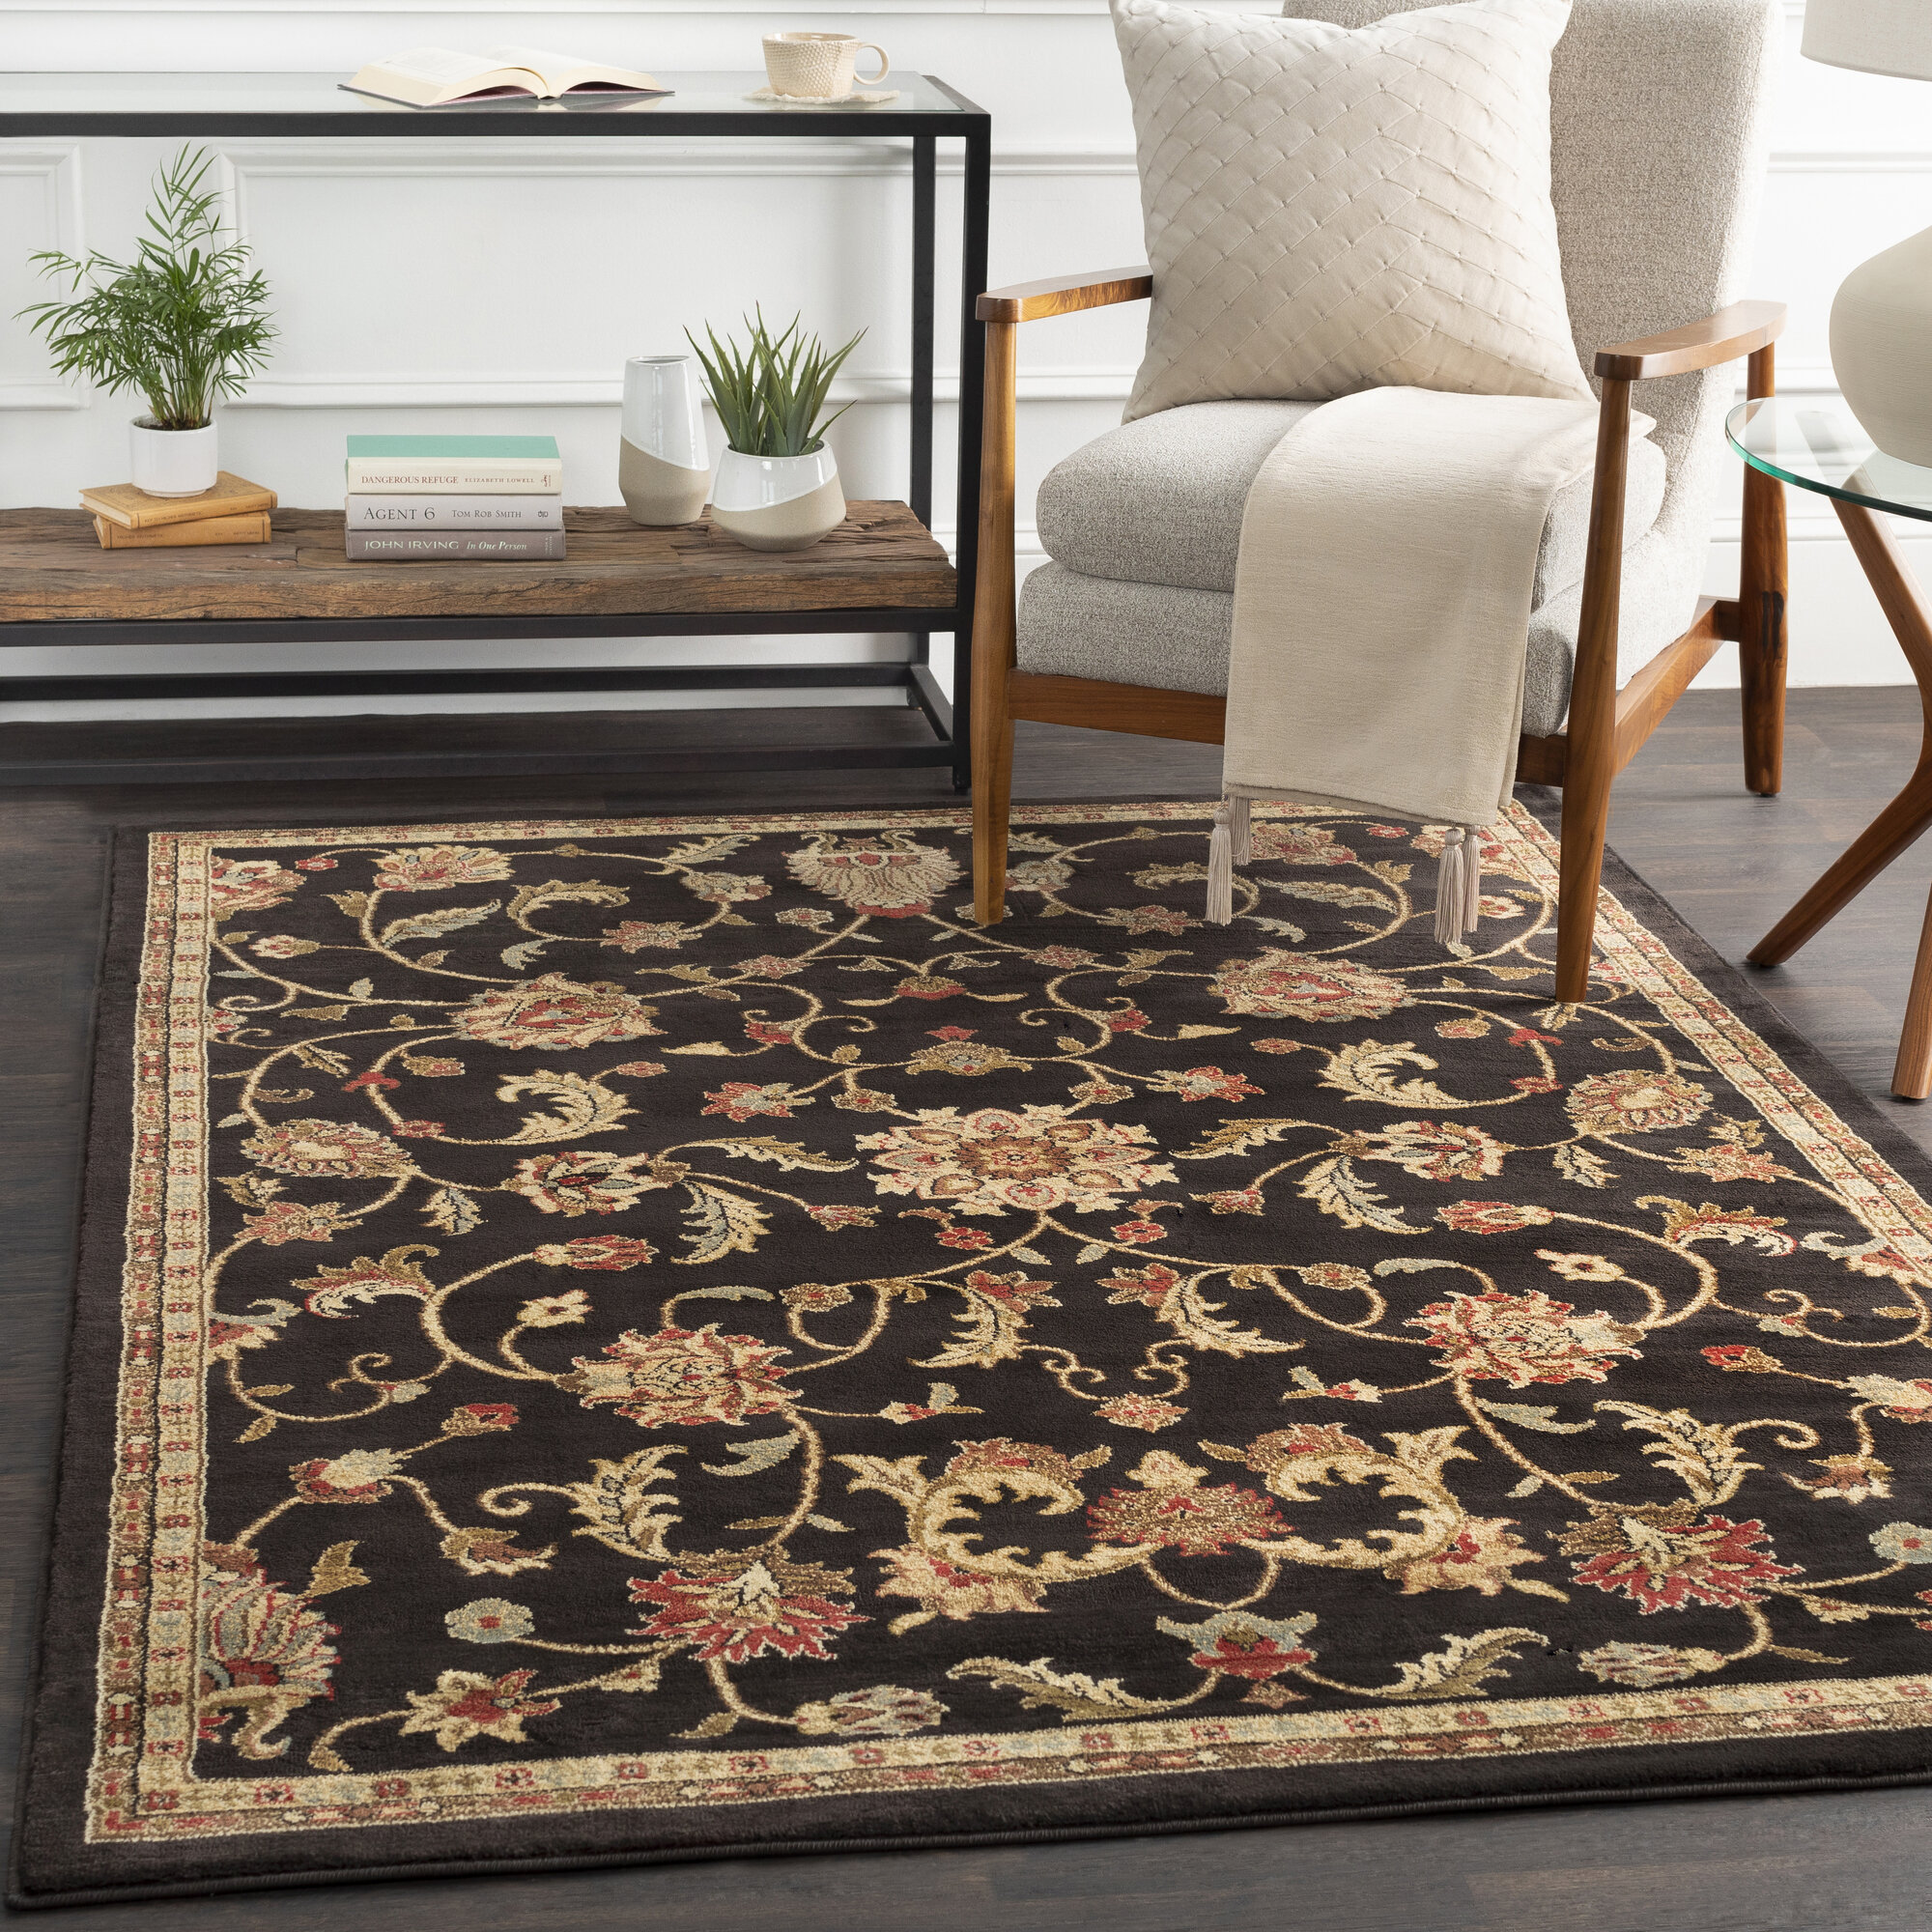 Charlton Home Gaskins Power Loom Black Tan Rug Reviews Wayfair